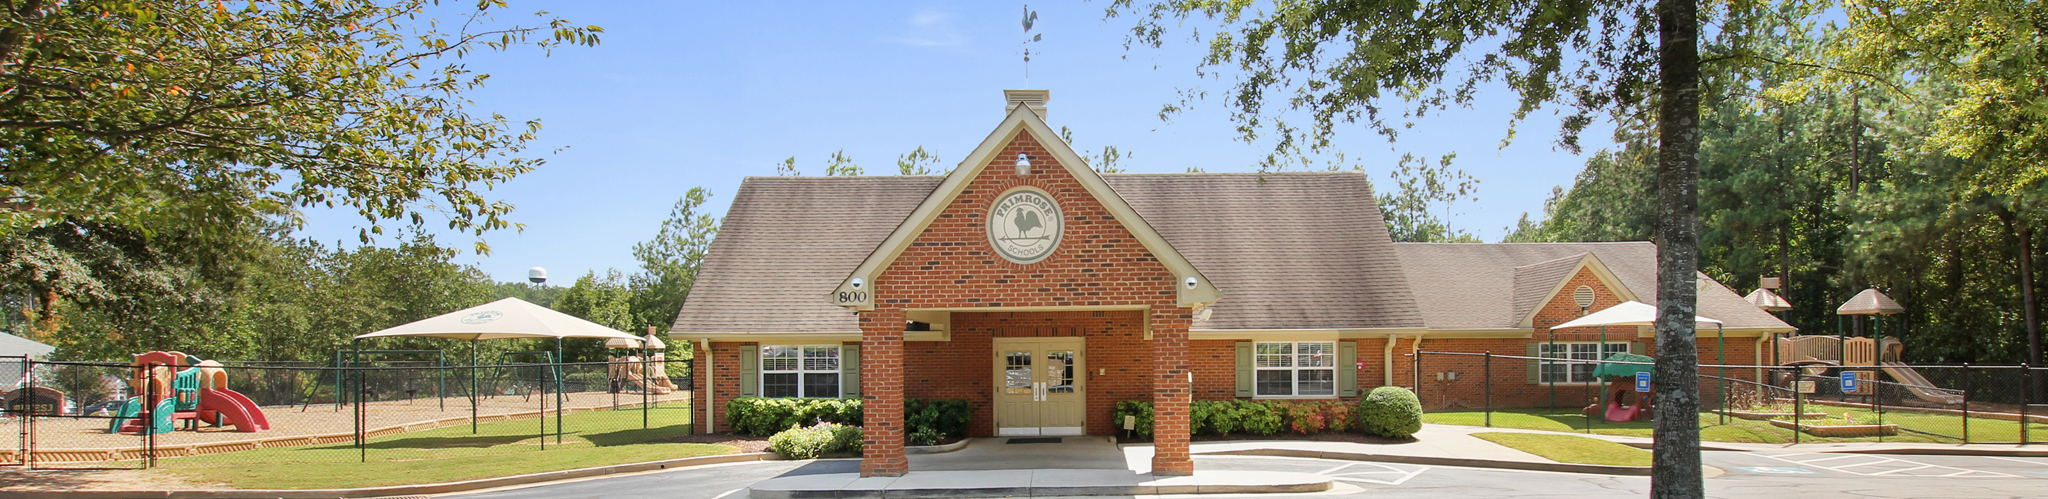 Exterior of a Primrose School of Suwanee West